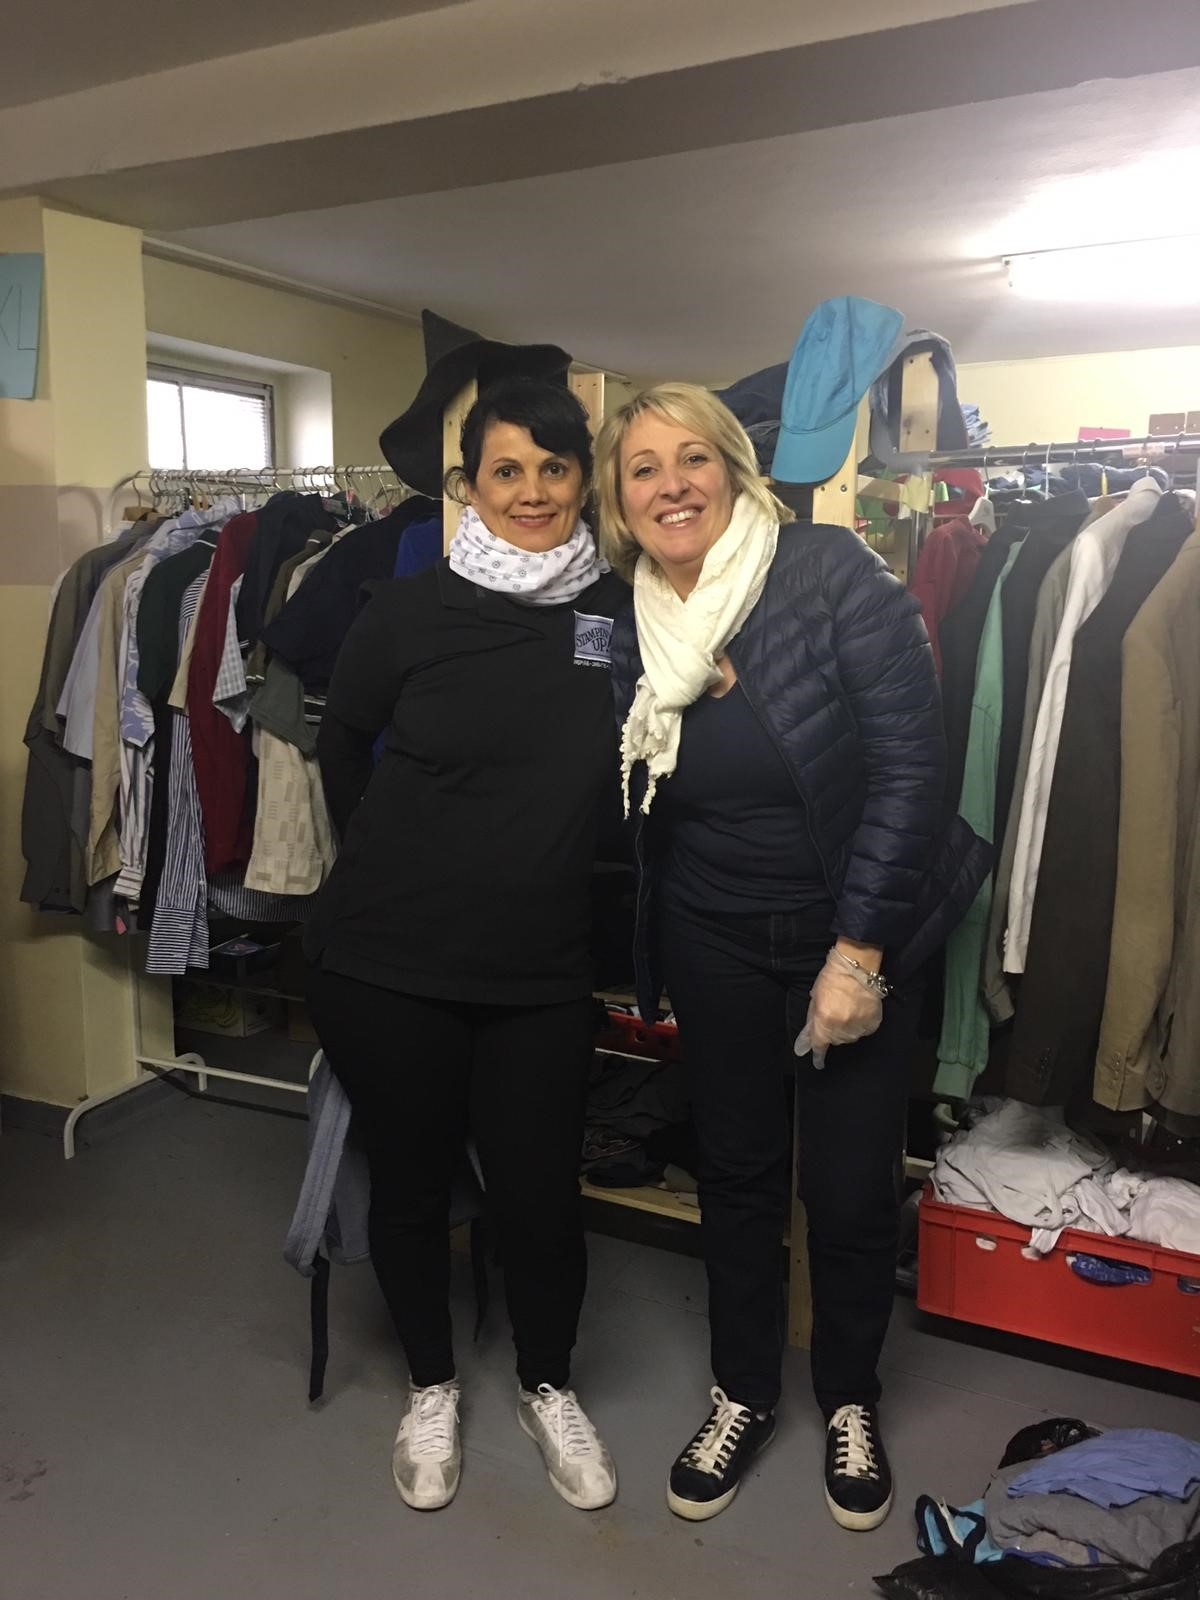 Salvation Army_clothes storage Mysma and Rose.jpg